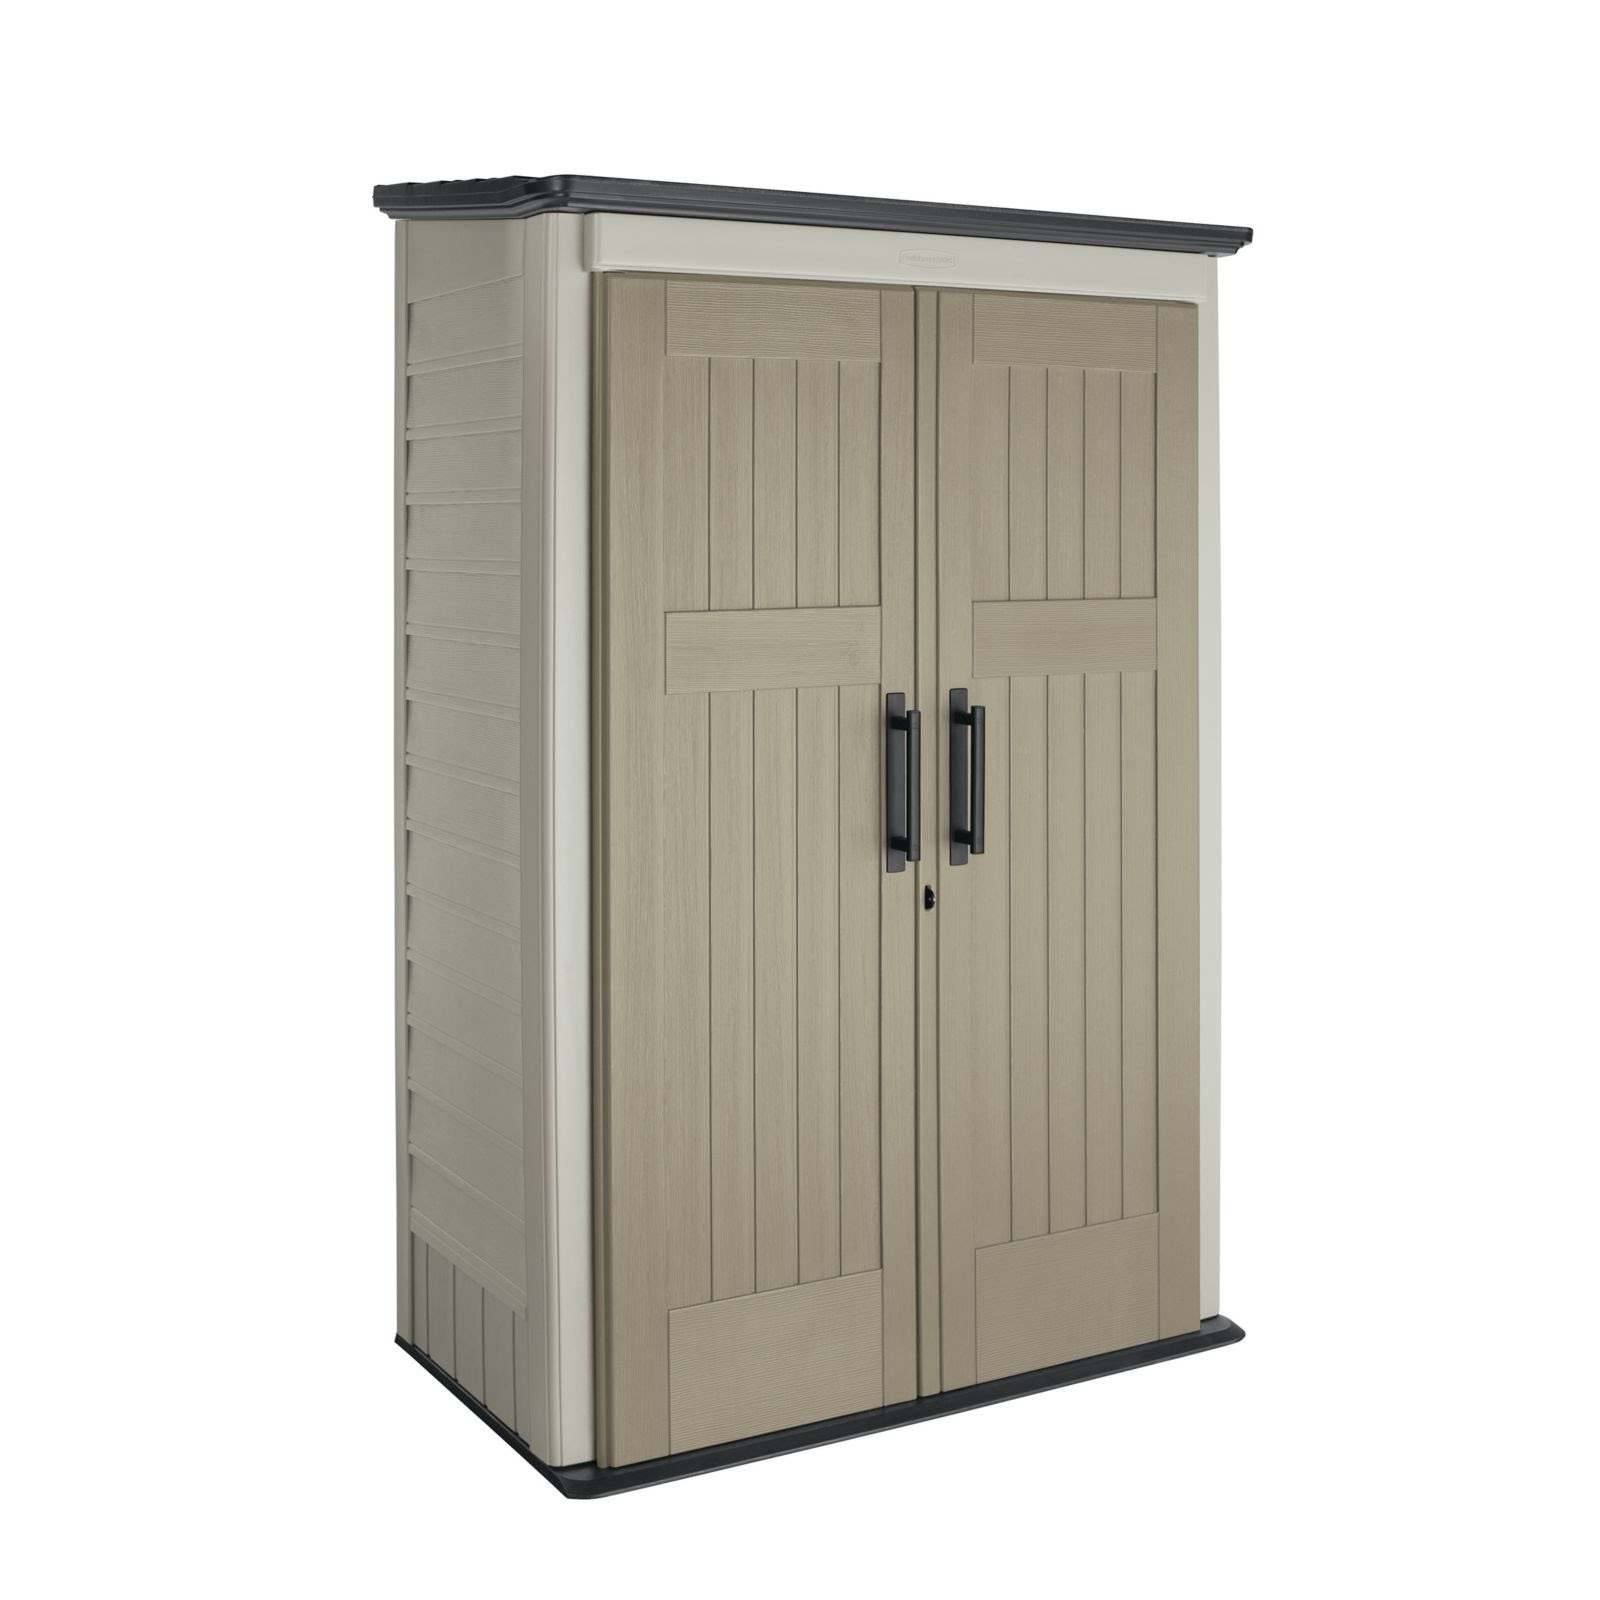 Rubbermaid 4 x 7 Vertical Storage Shed